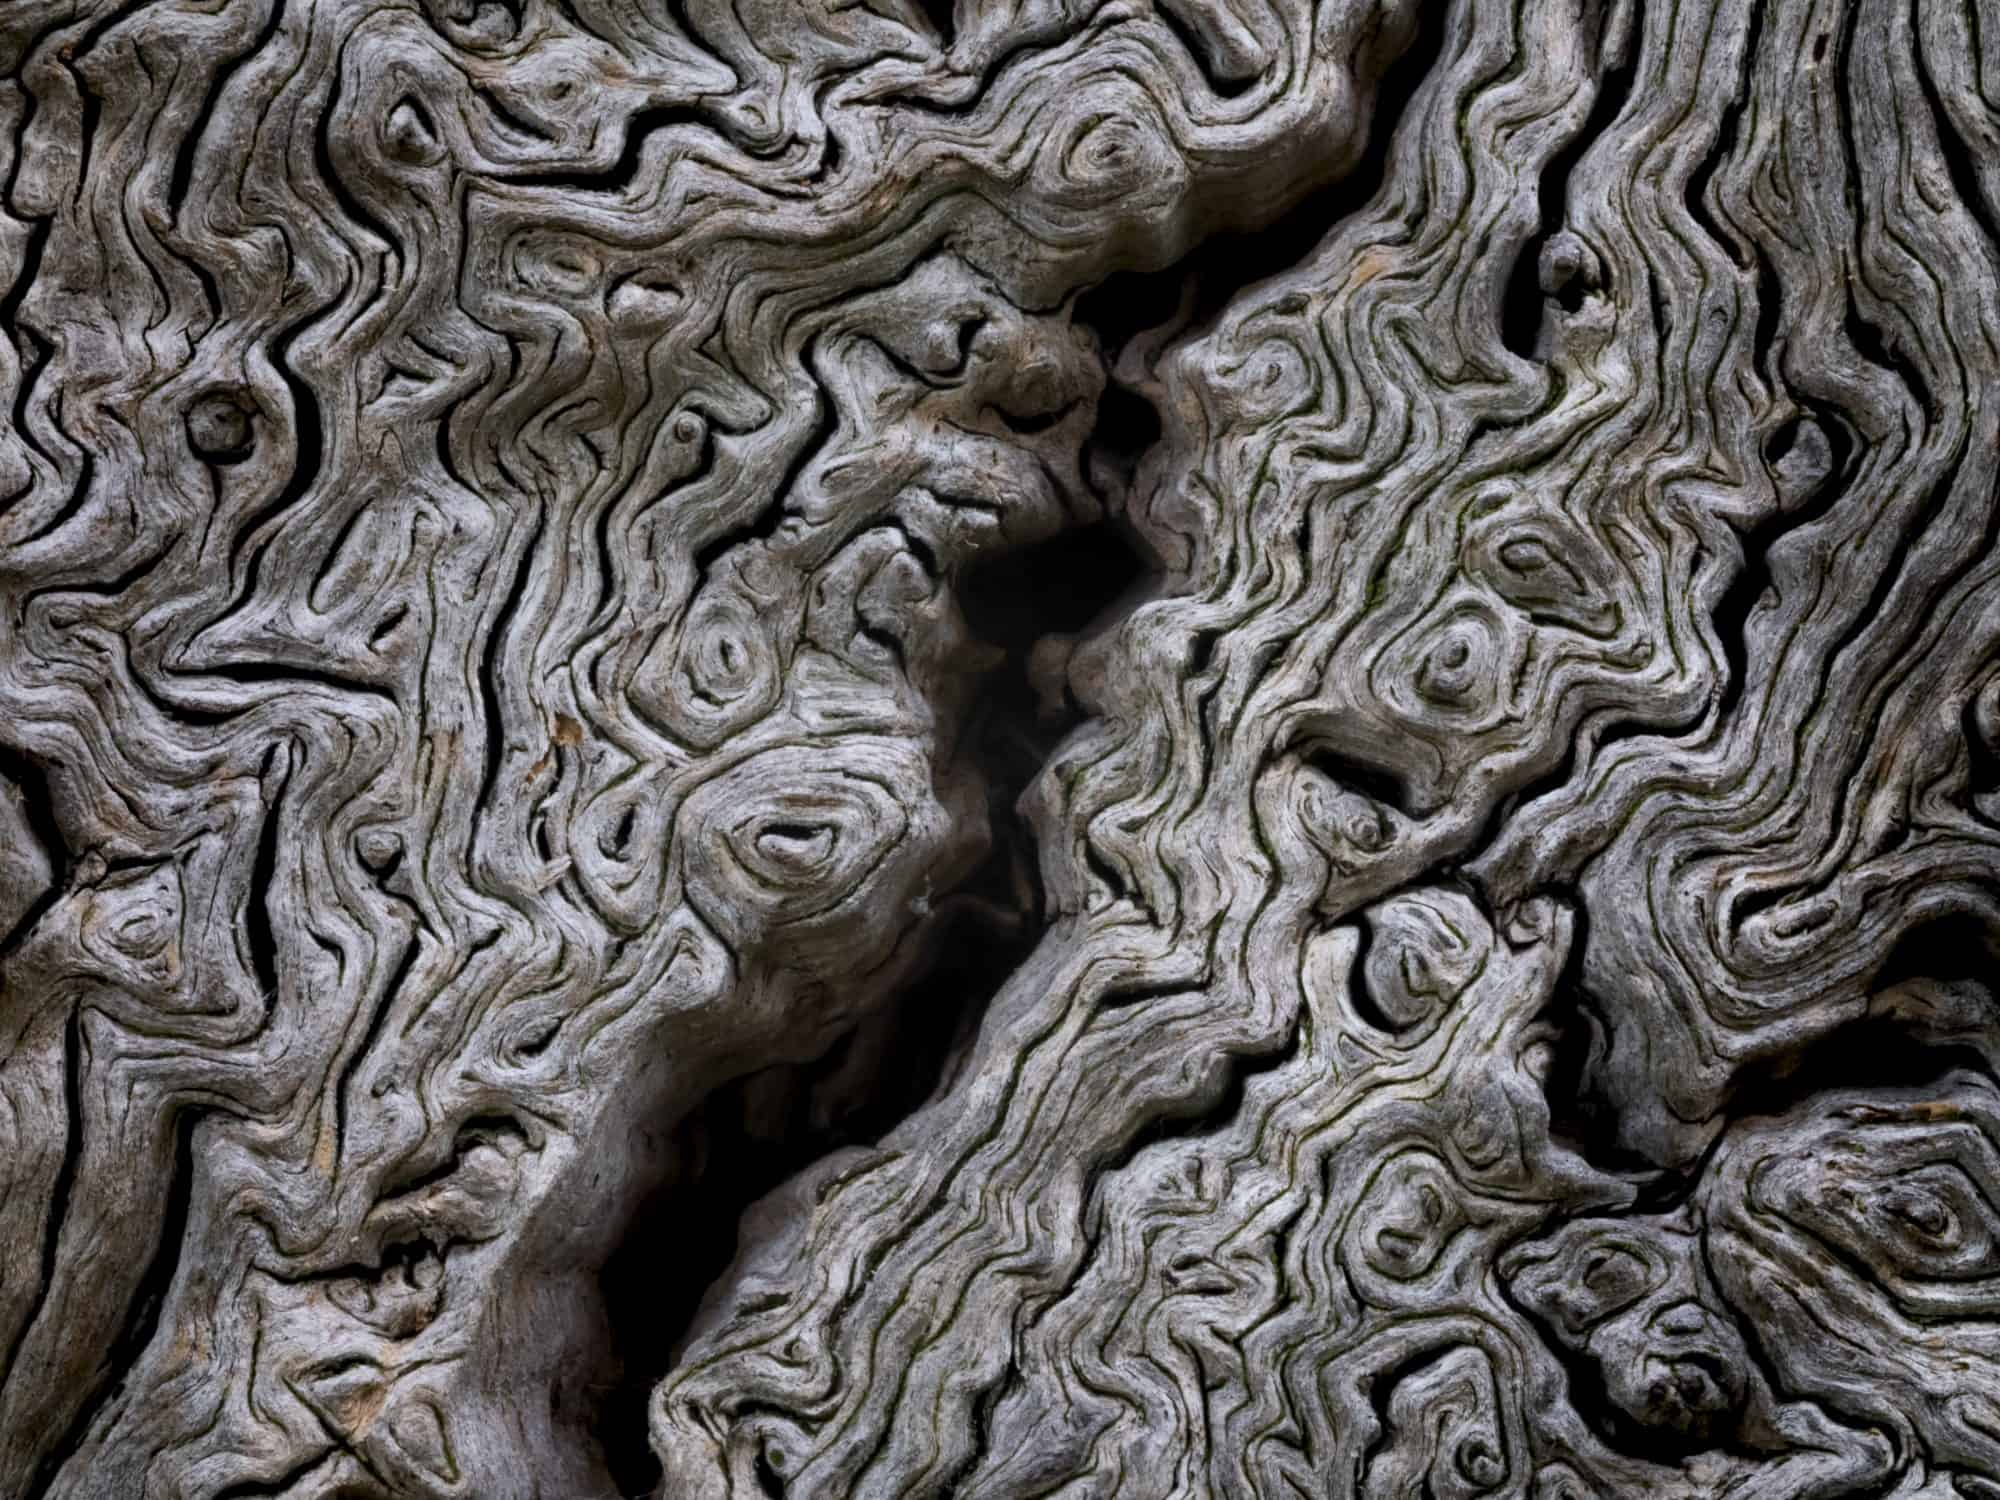 Detail of fissured wood of an ancient oak tree, Moccas Park National Nature Reserve, Herefordshire, England